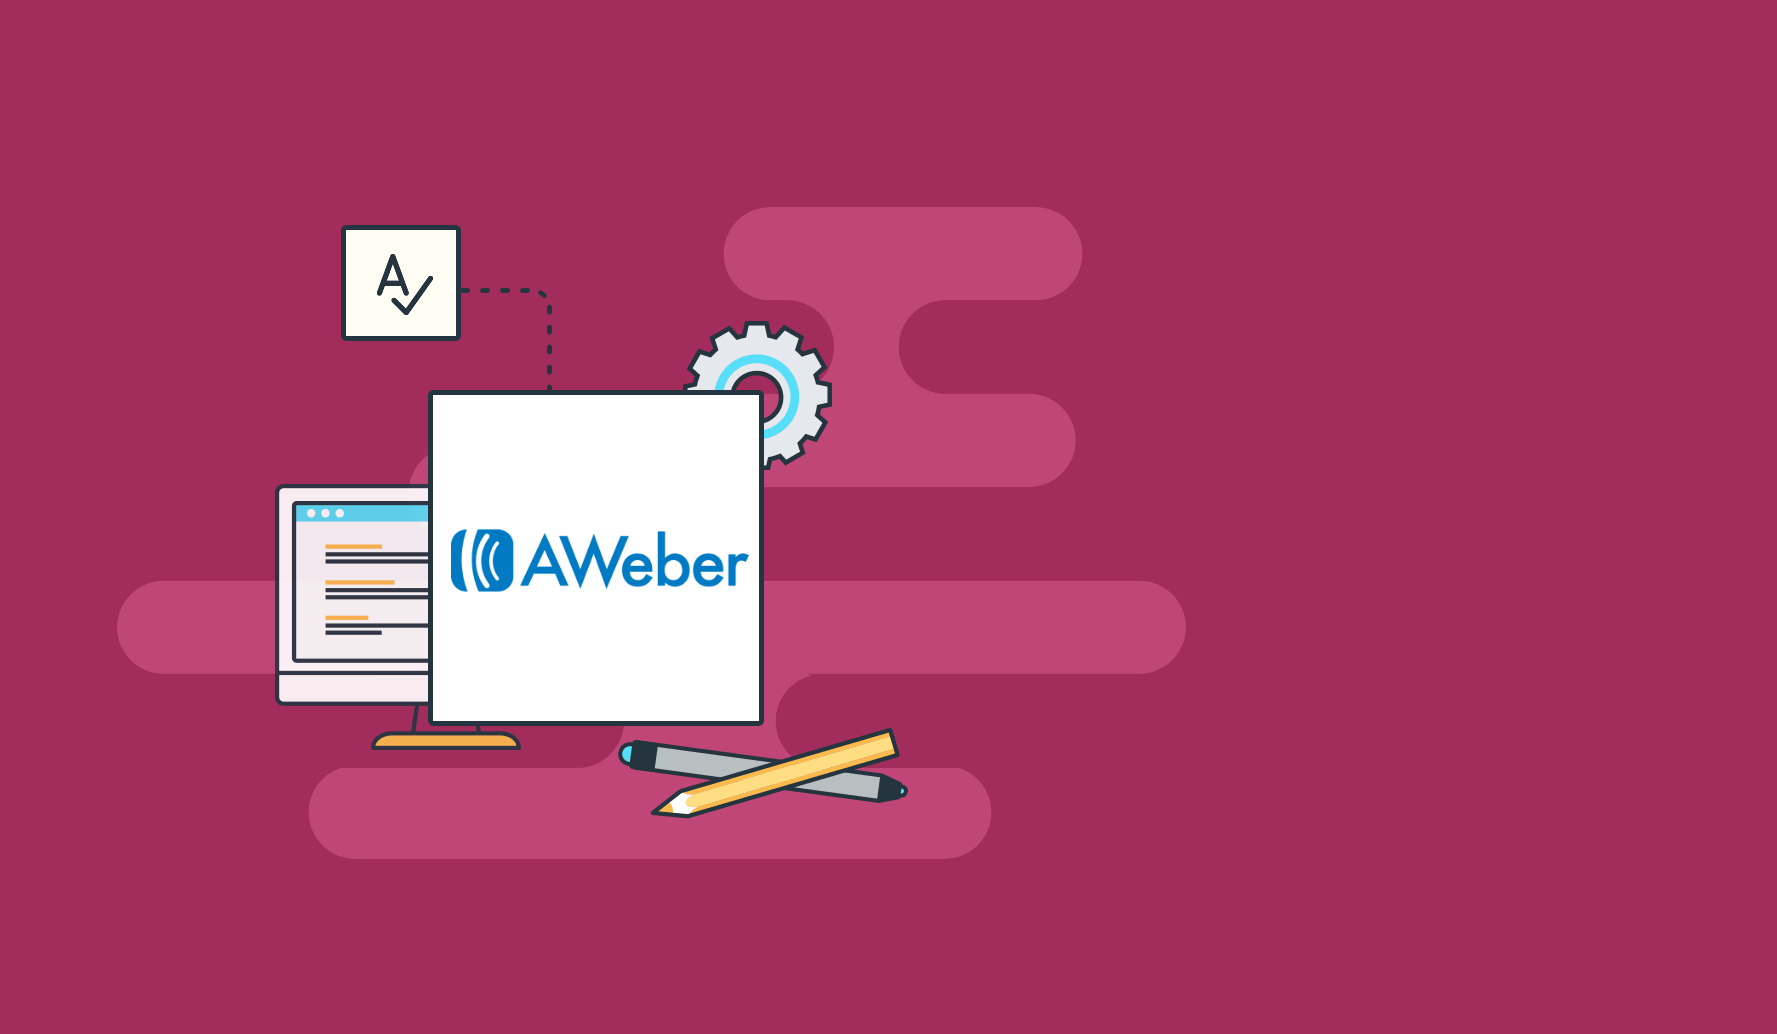 Aweber Email Marketing Voucher Code Printable 2020